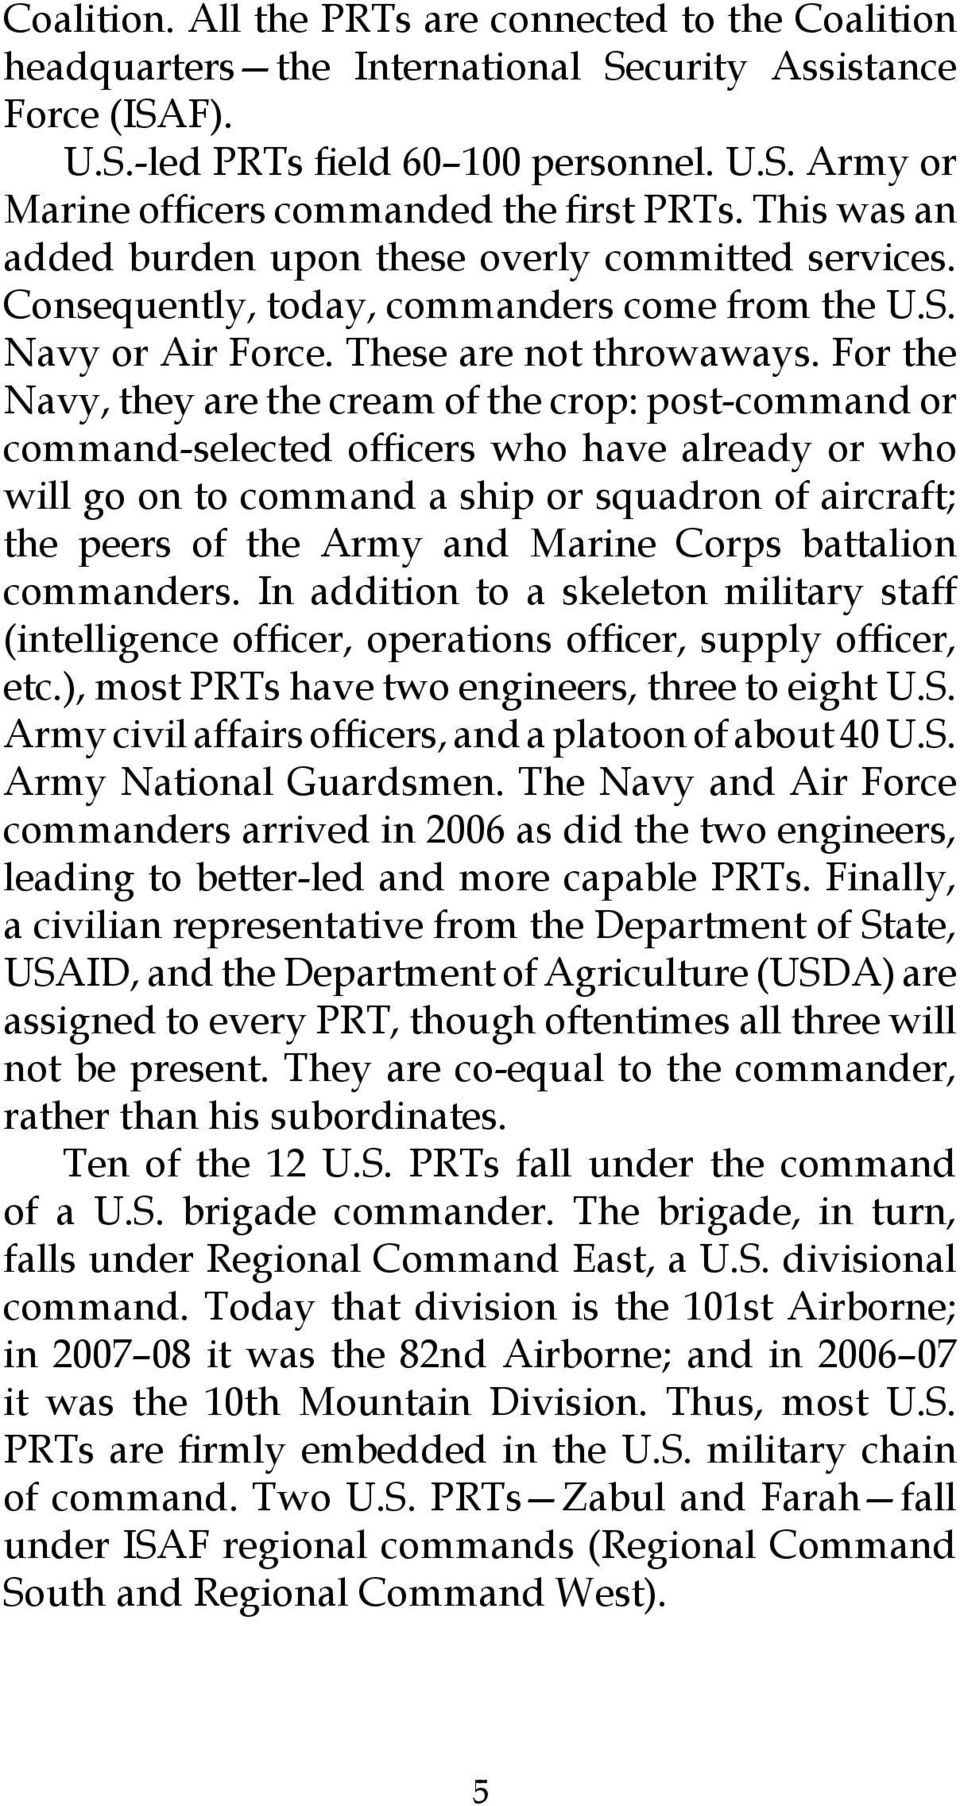 For the Navy, they are the cream of the crop: post-command or command-selected officers who have already or who will go on to command a ship or squadron of aircraft; the peers of the Army and Marine